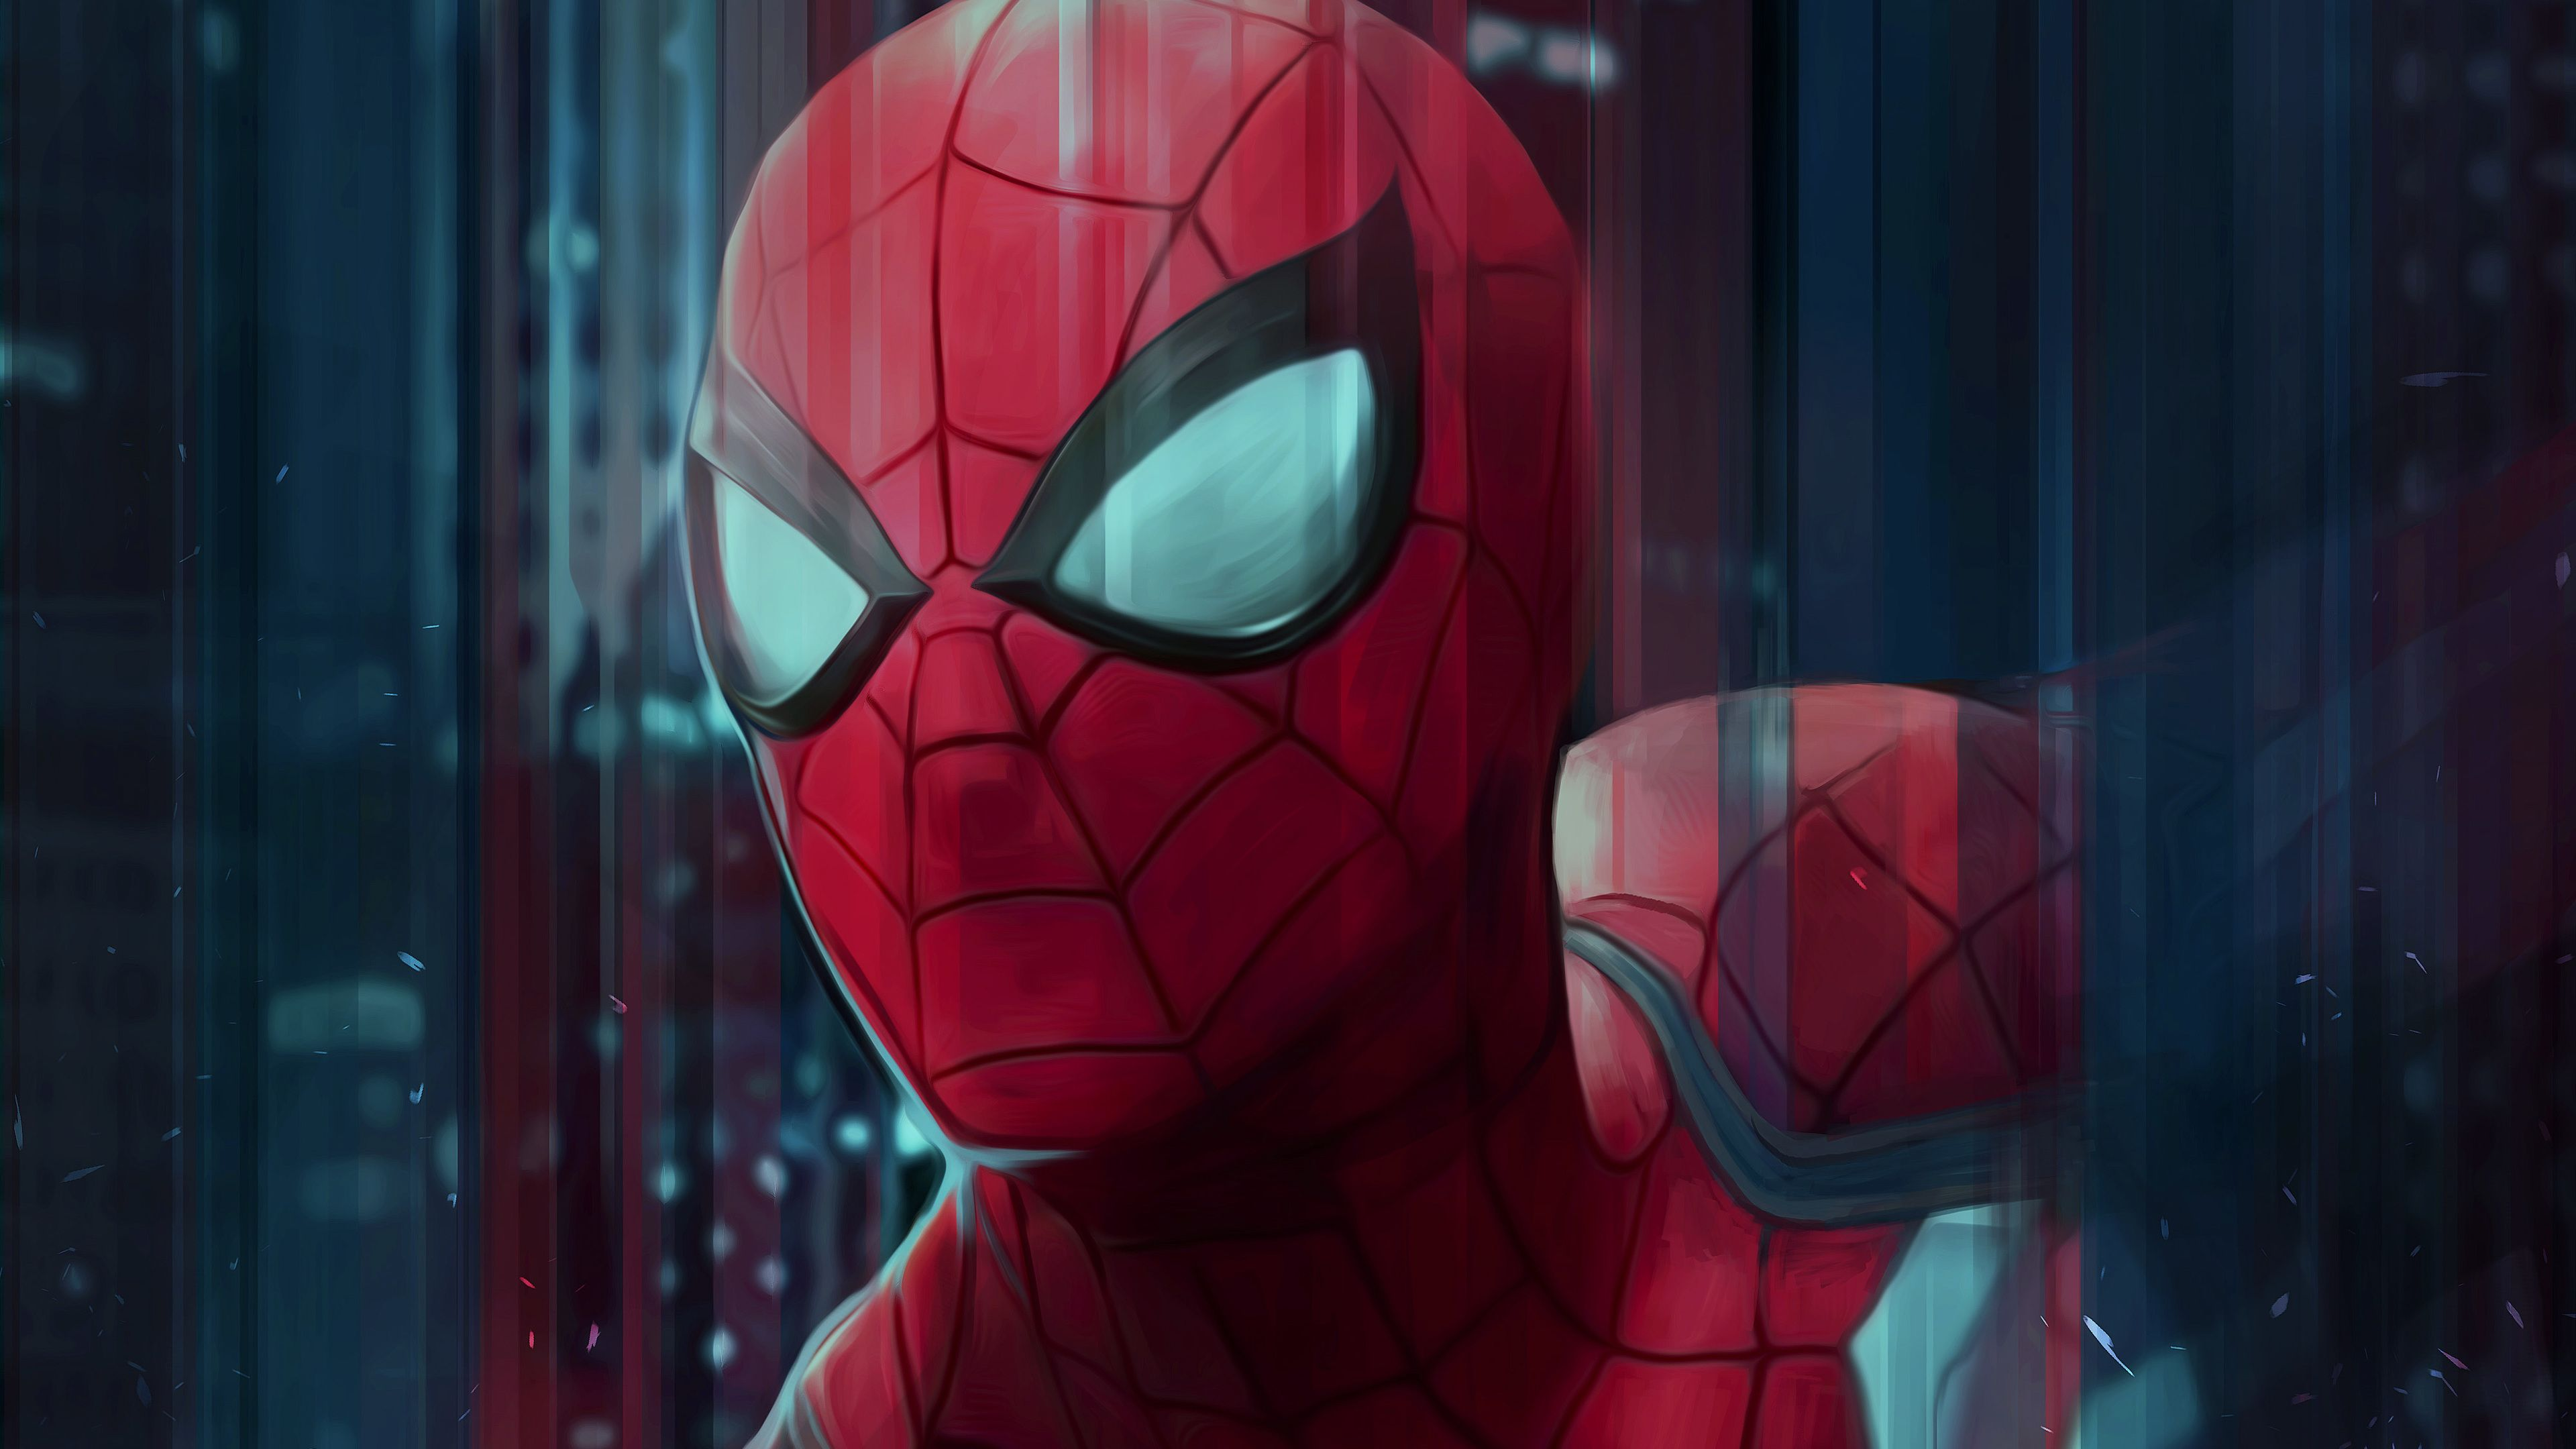 Spiderman Digital Art 4k Spiderman Art Spiderman Artwork Spiderman